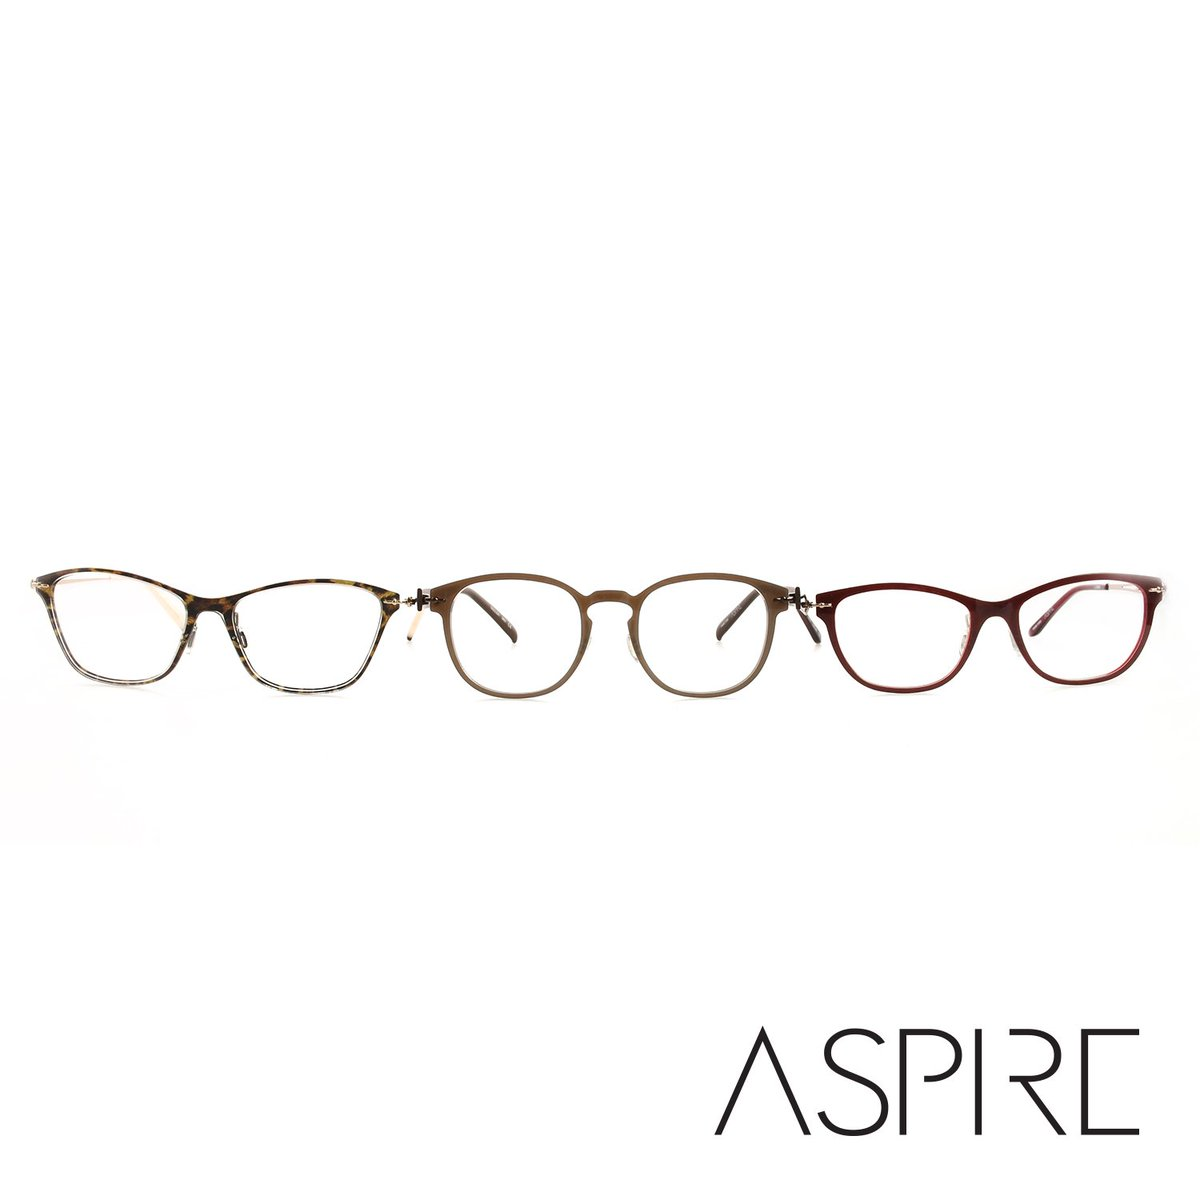 New styles, same lightweight look and feel. Introducing Elegant, Excellent, and Grand. What do you #AspireToBe? #glasses #eyewear<br>http://pic.twitter.com/vho6OebE3G